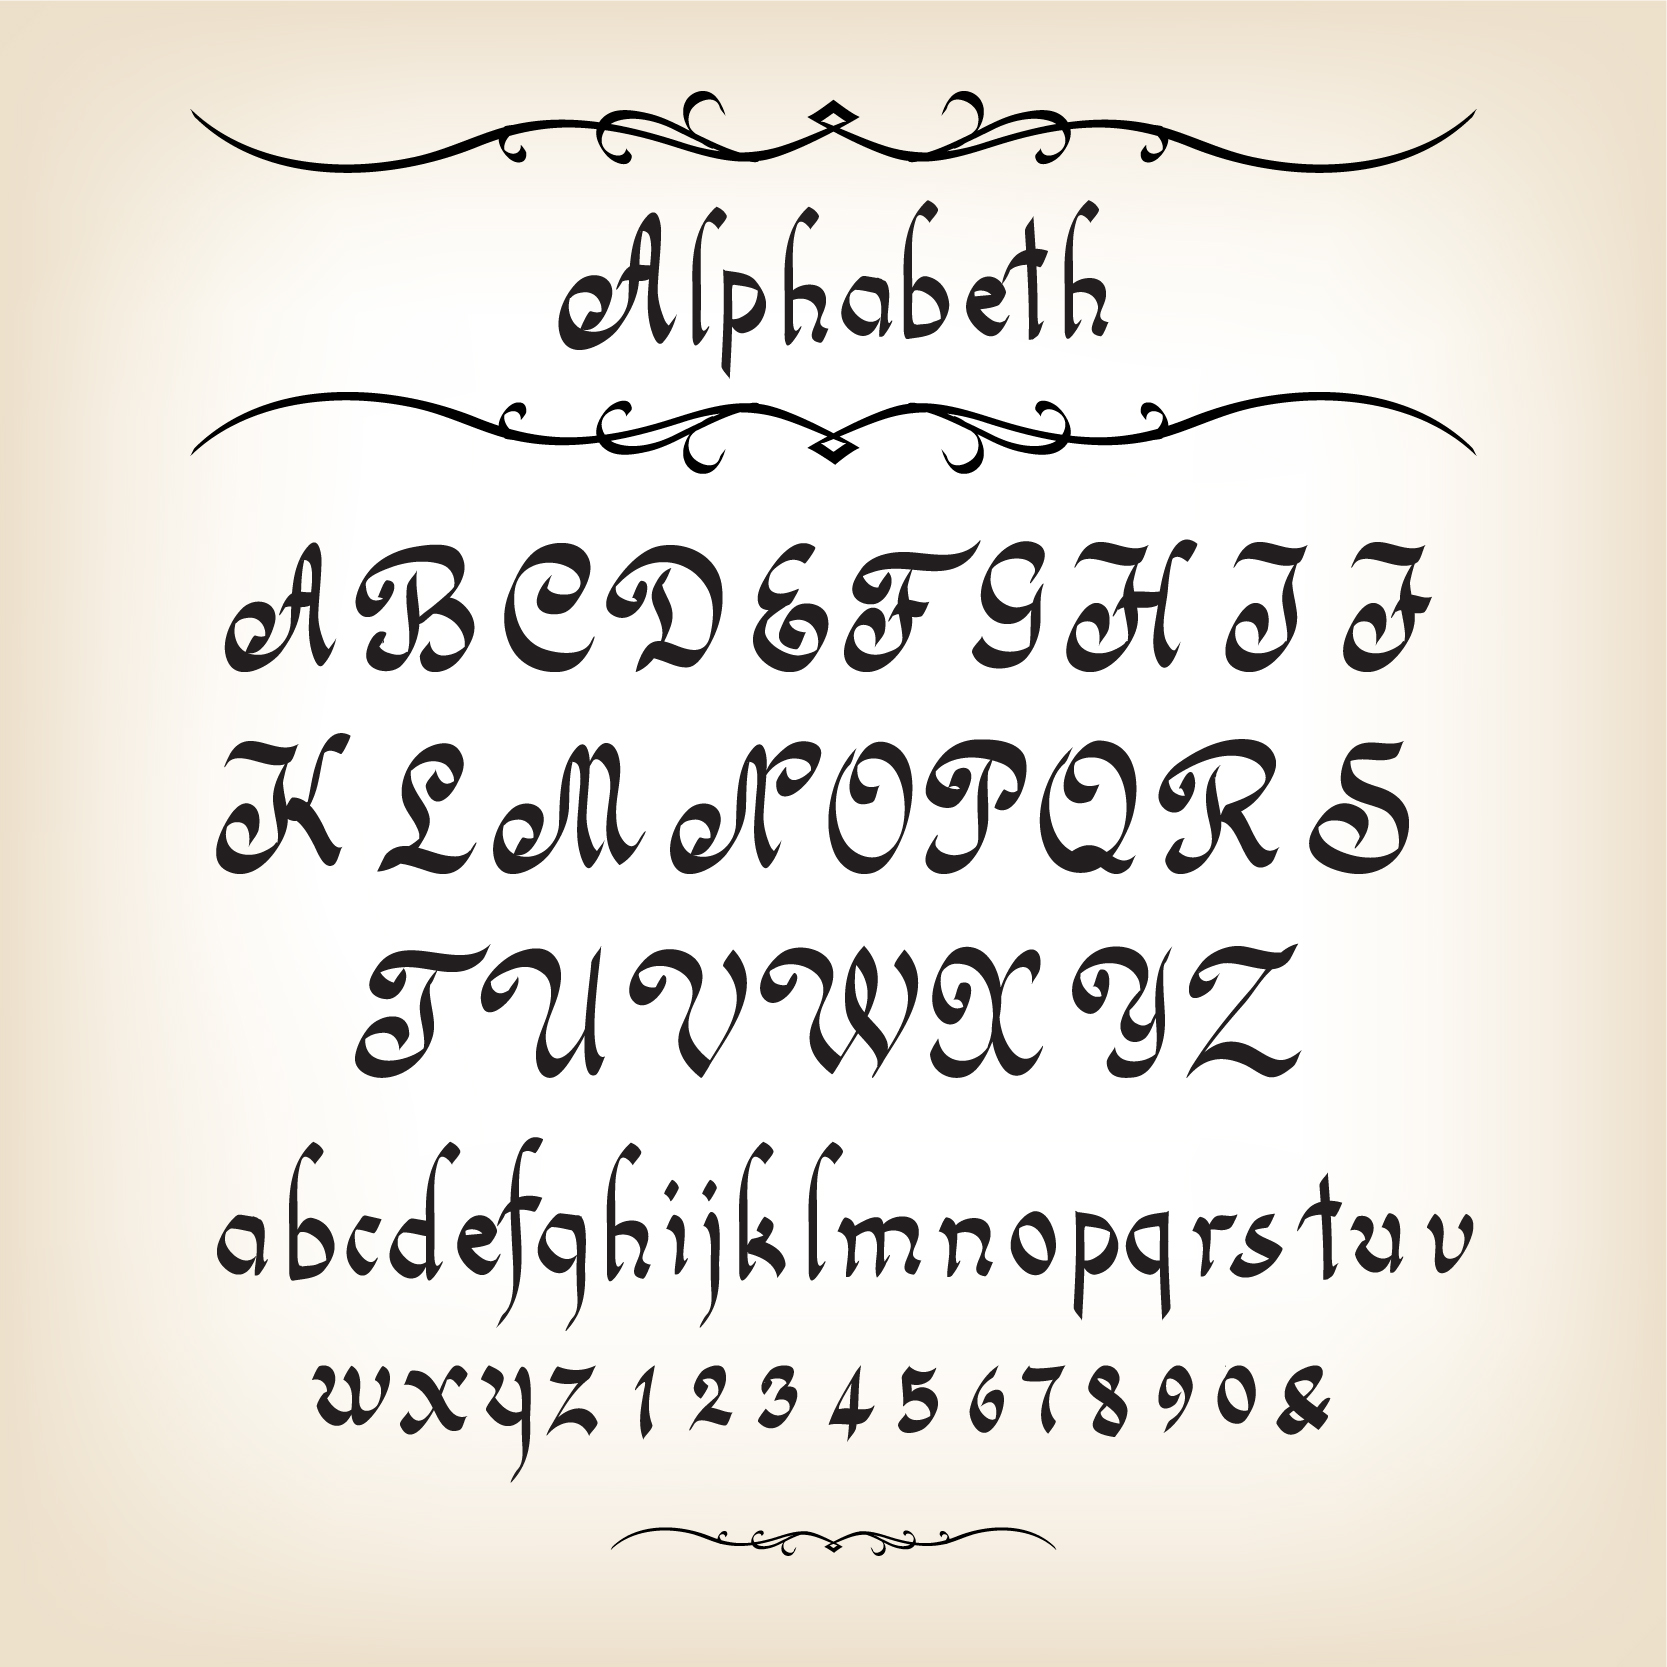 Hand drawn Alphabets design vector 04 - Vector Font free download